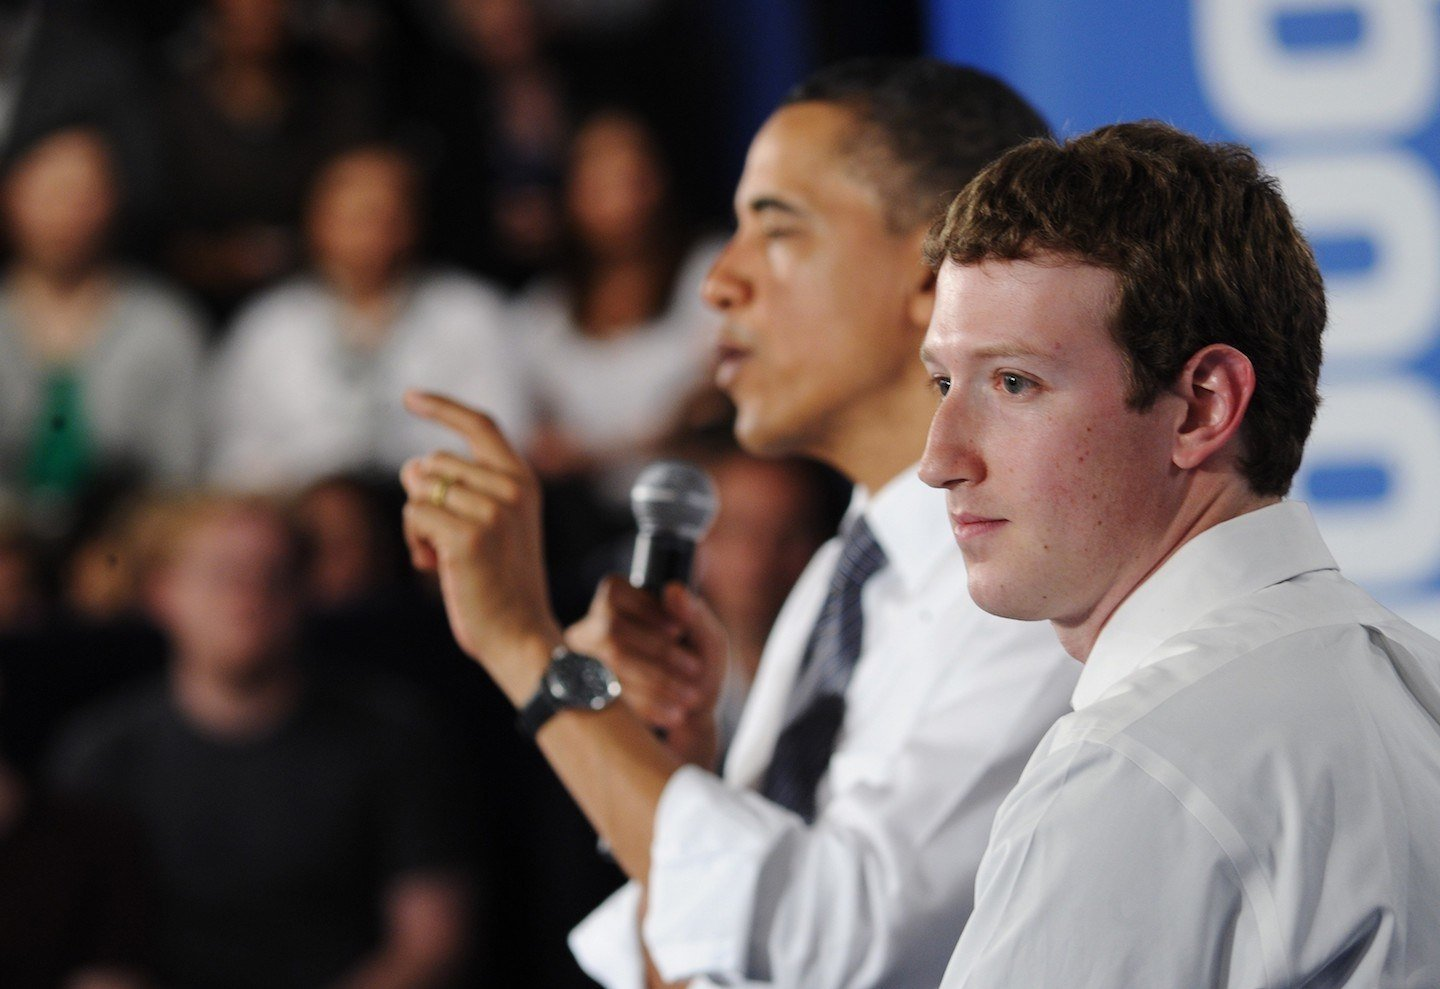 ExObama Campaign Director Drops Bombshell Claim on Facebook They Were on Our Side